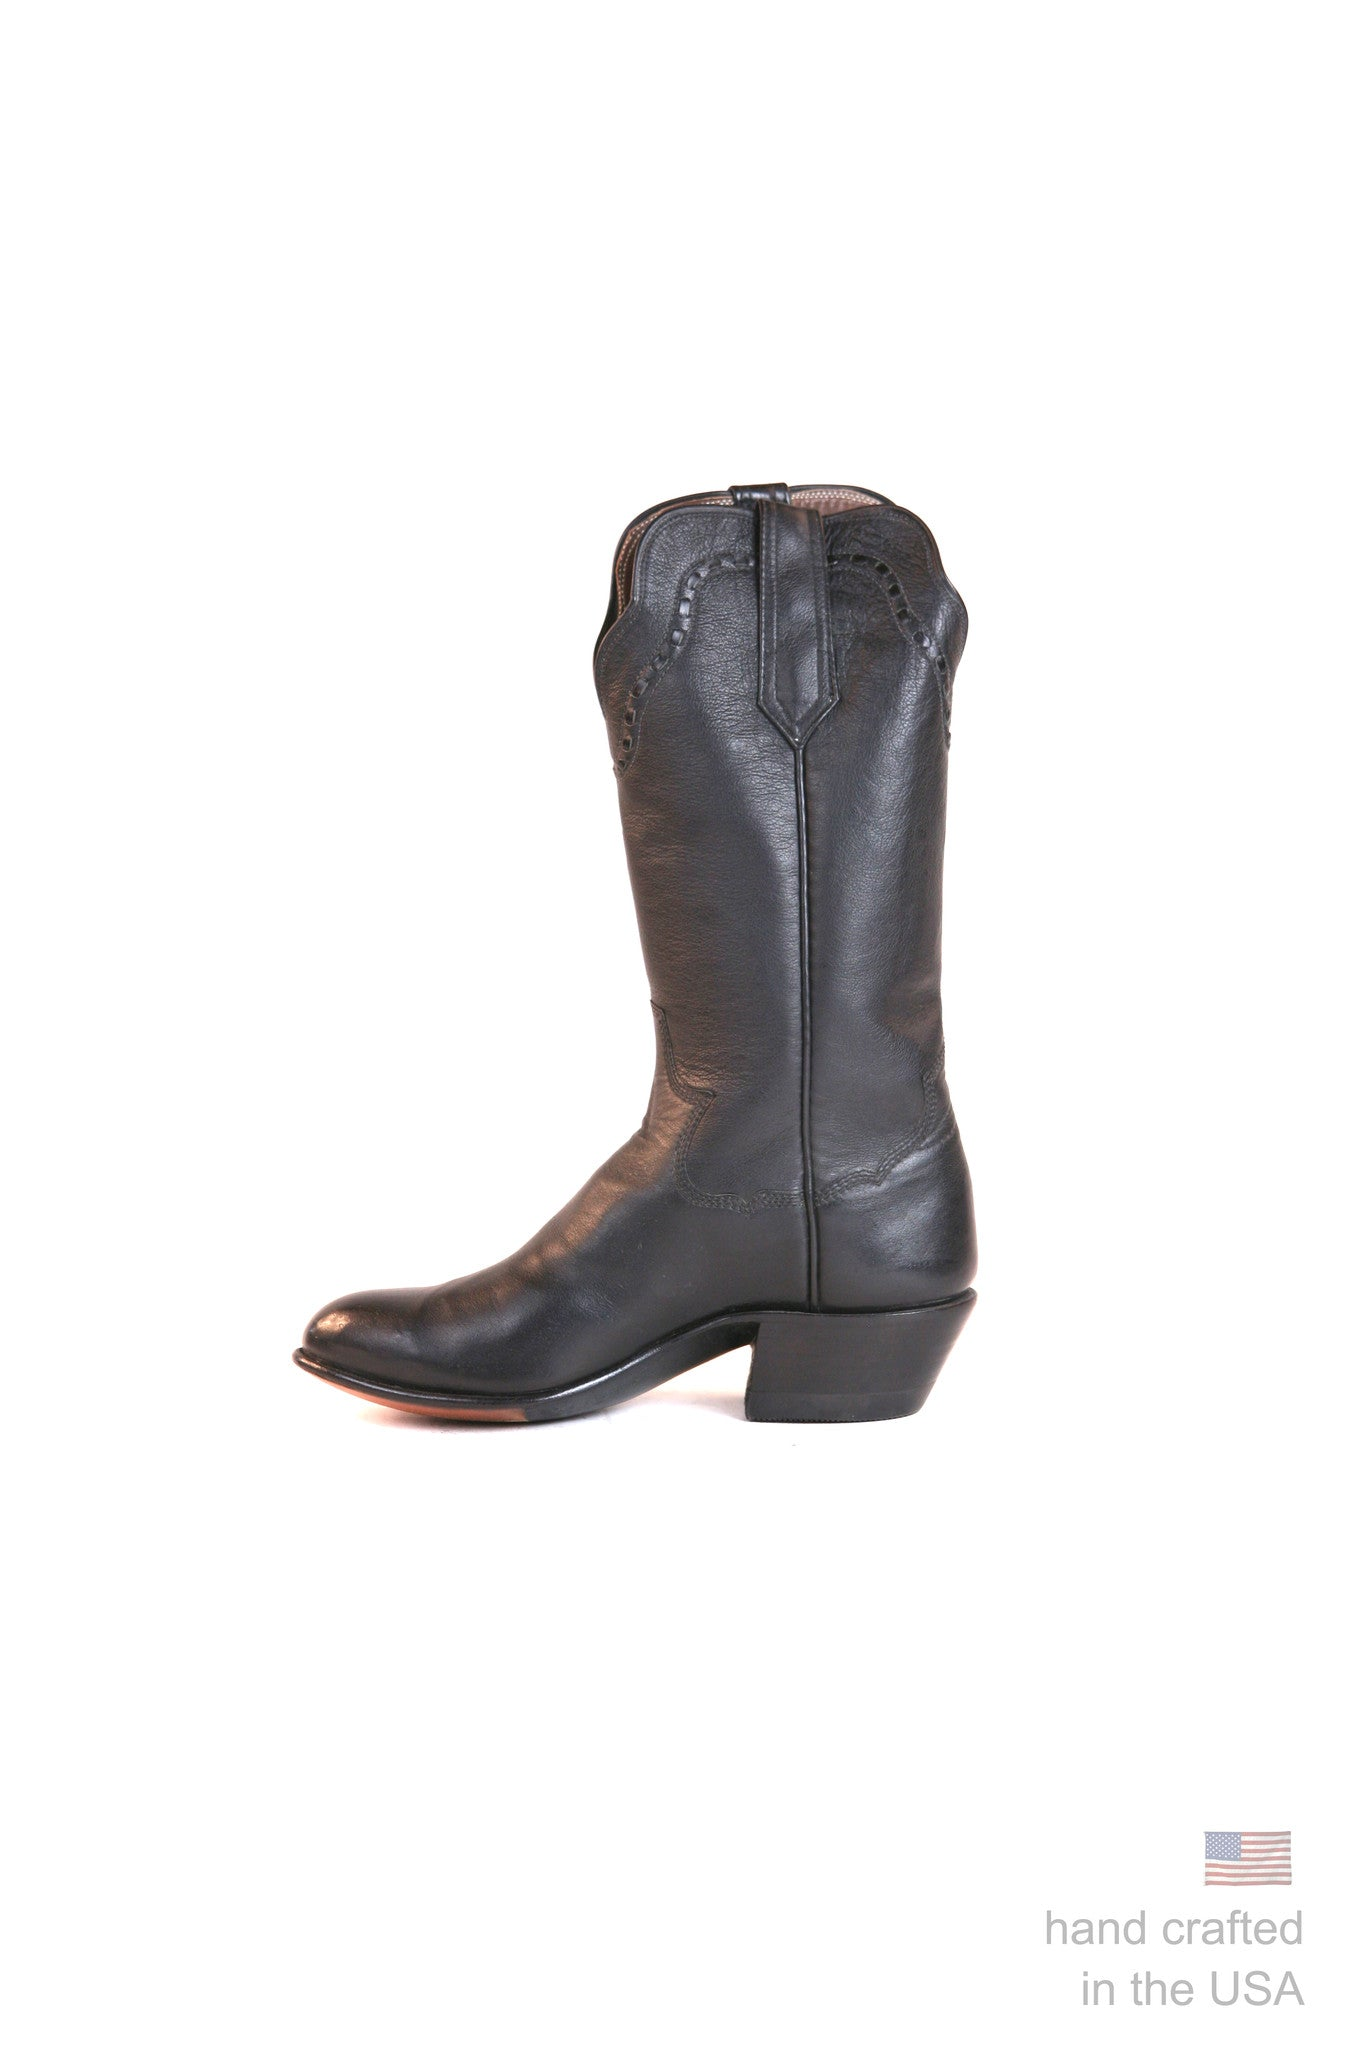 Singles: Boot 0079: Size 5.5 C